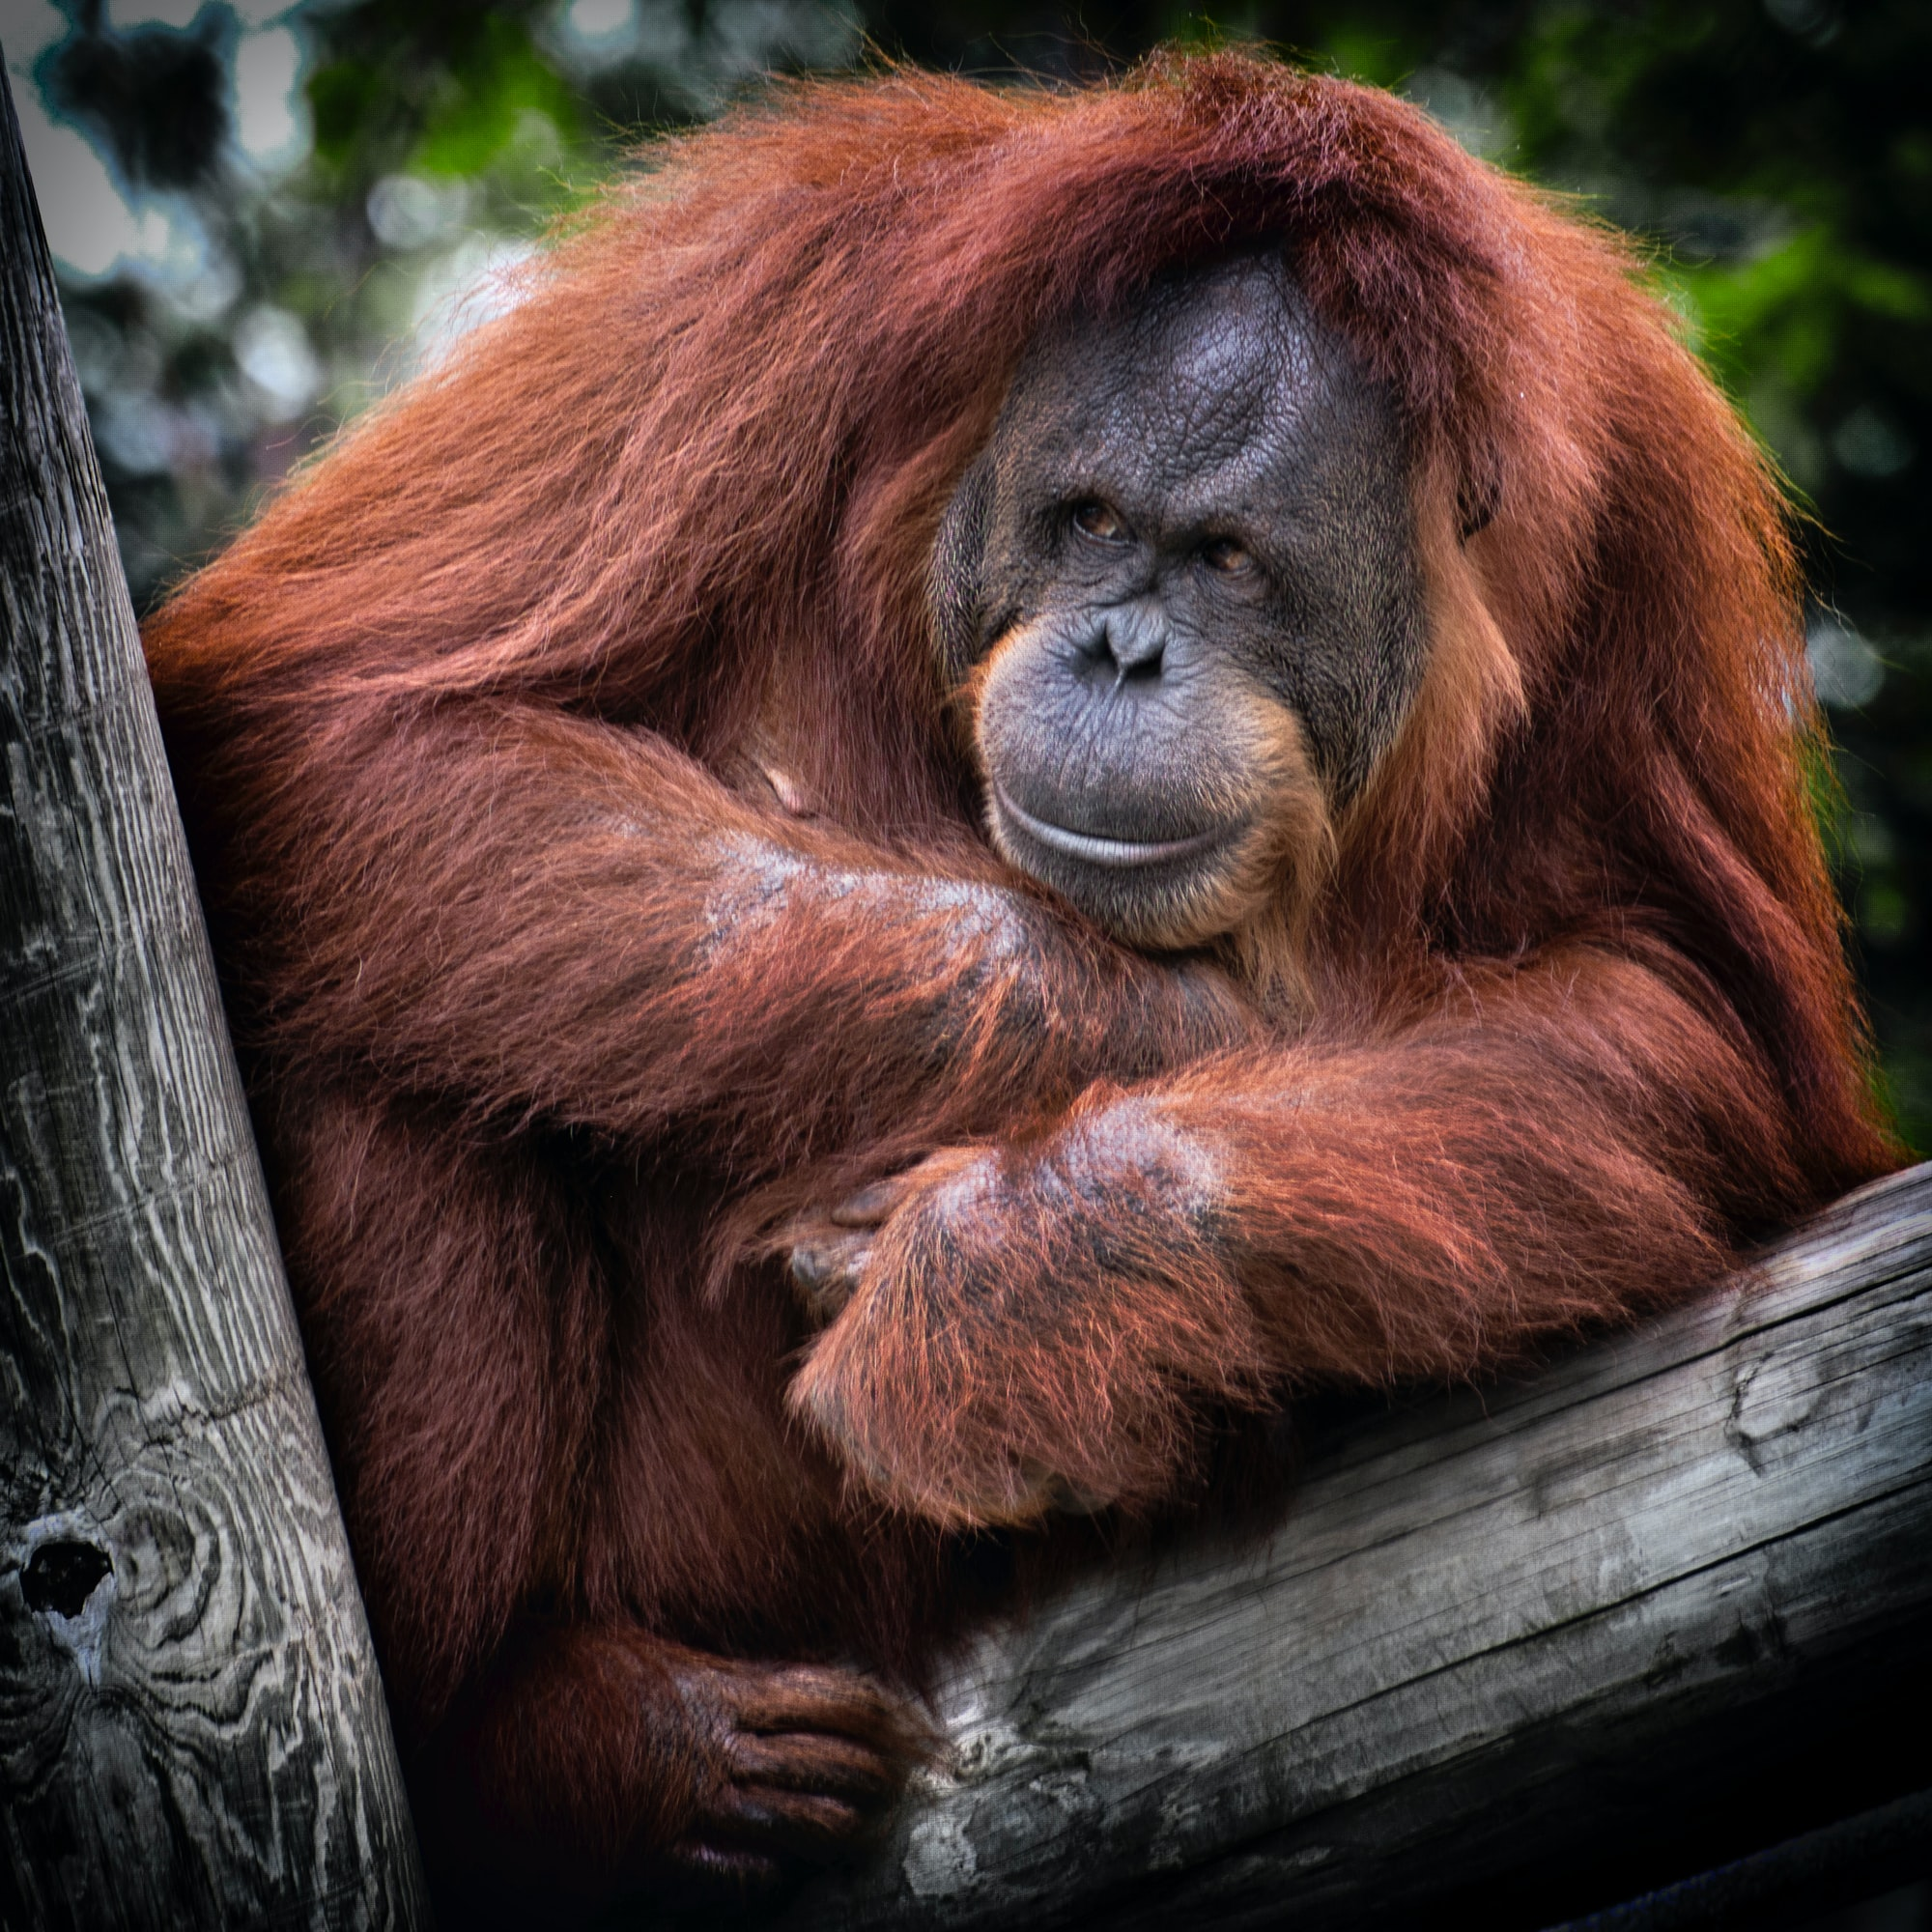 Orangutan on a tree